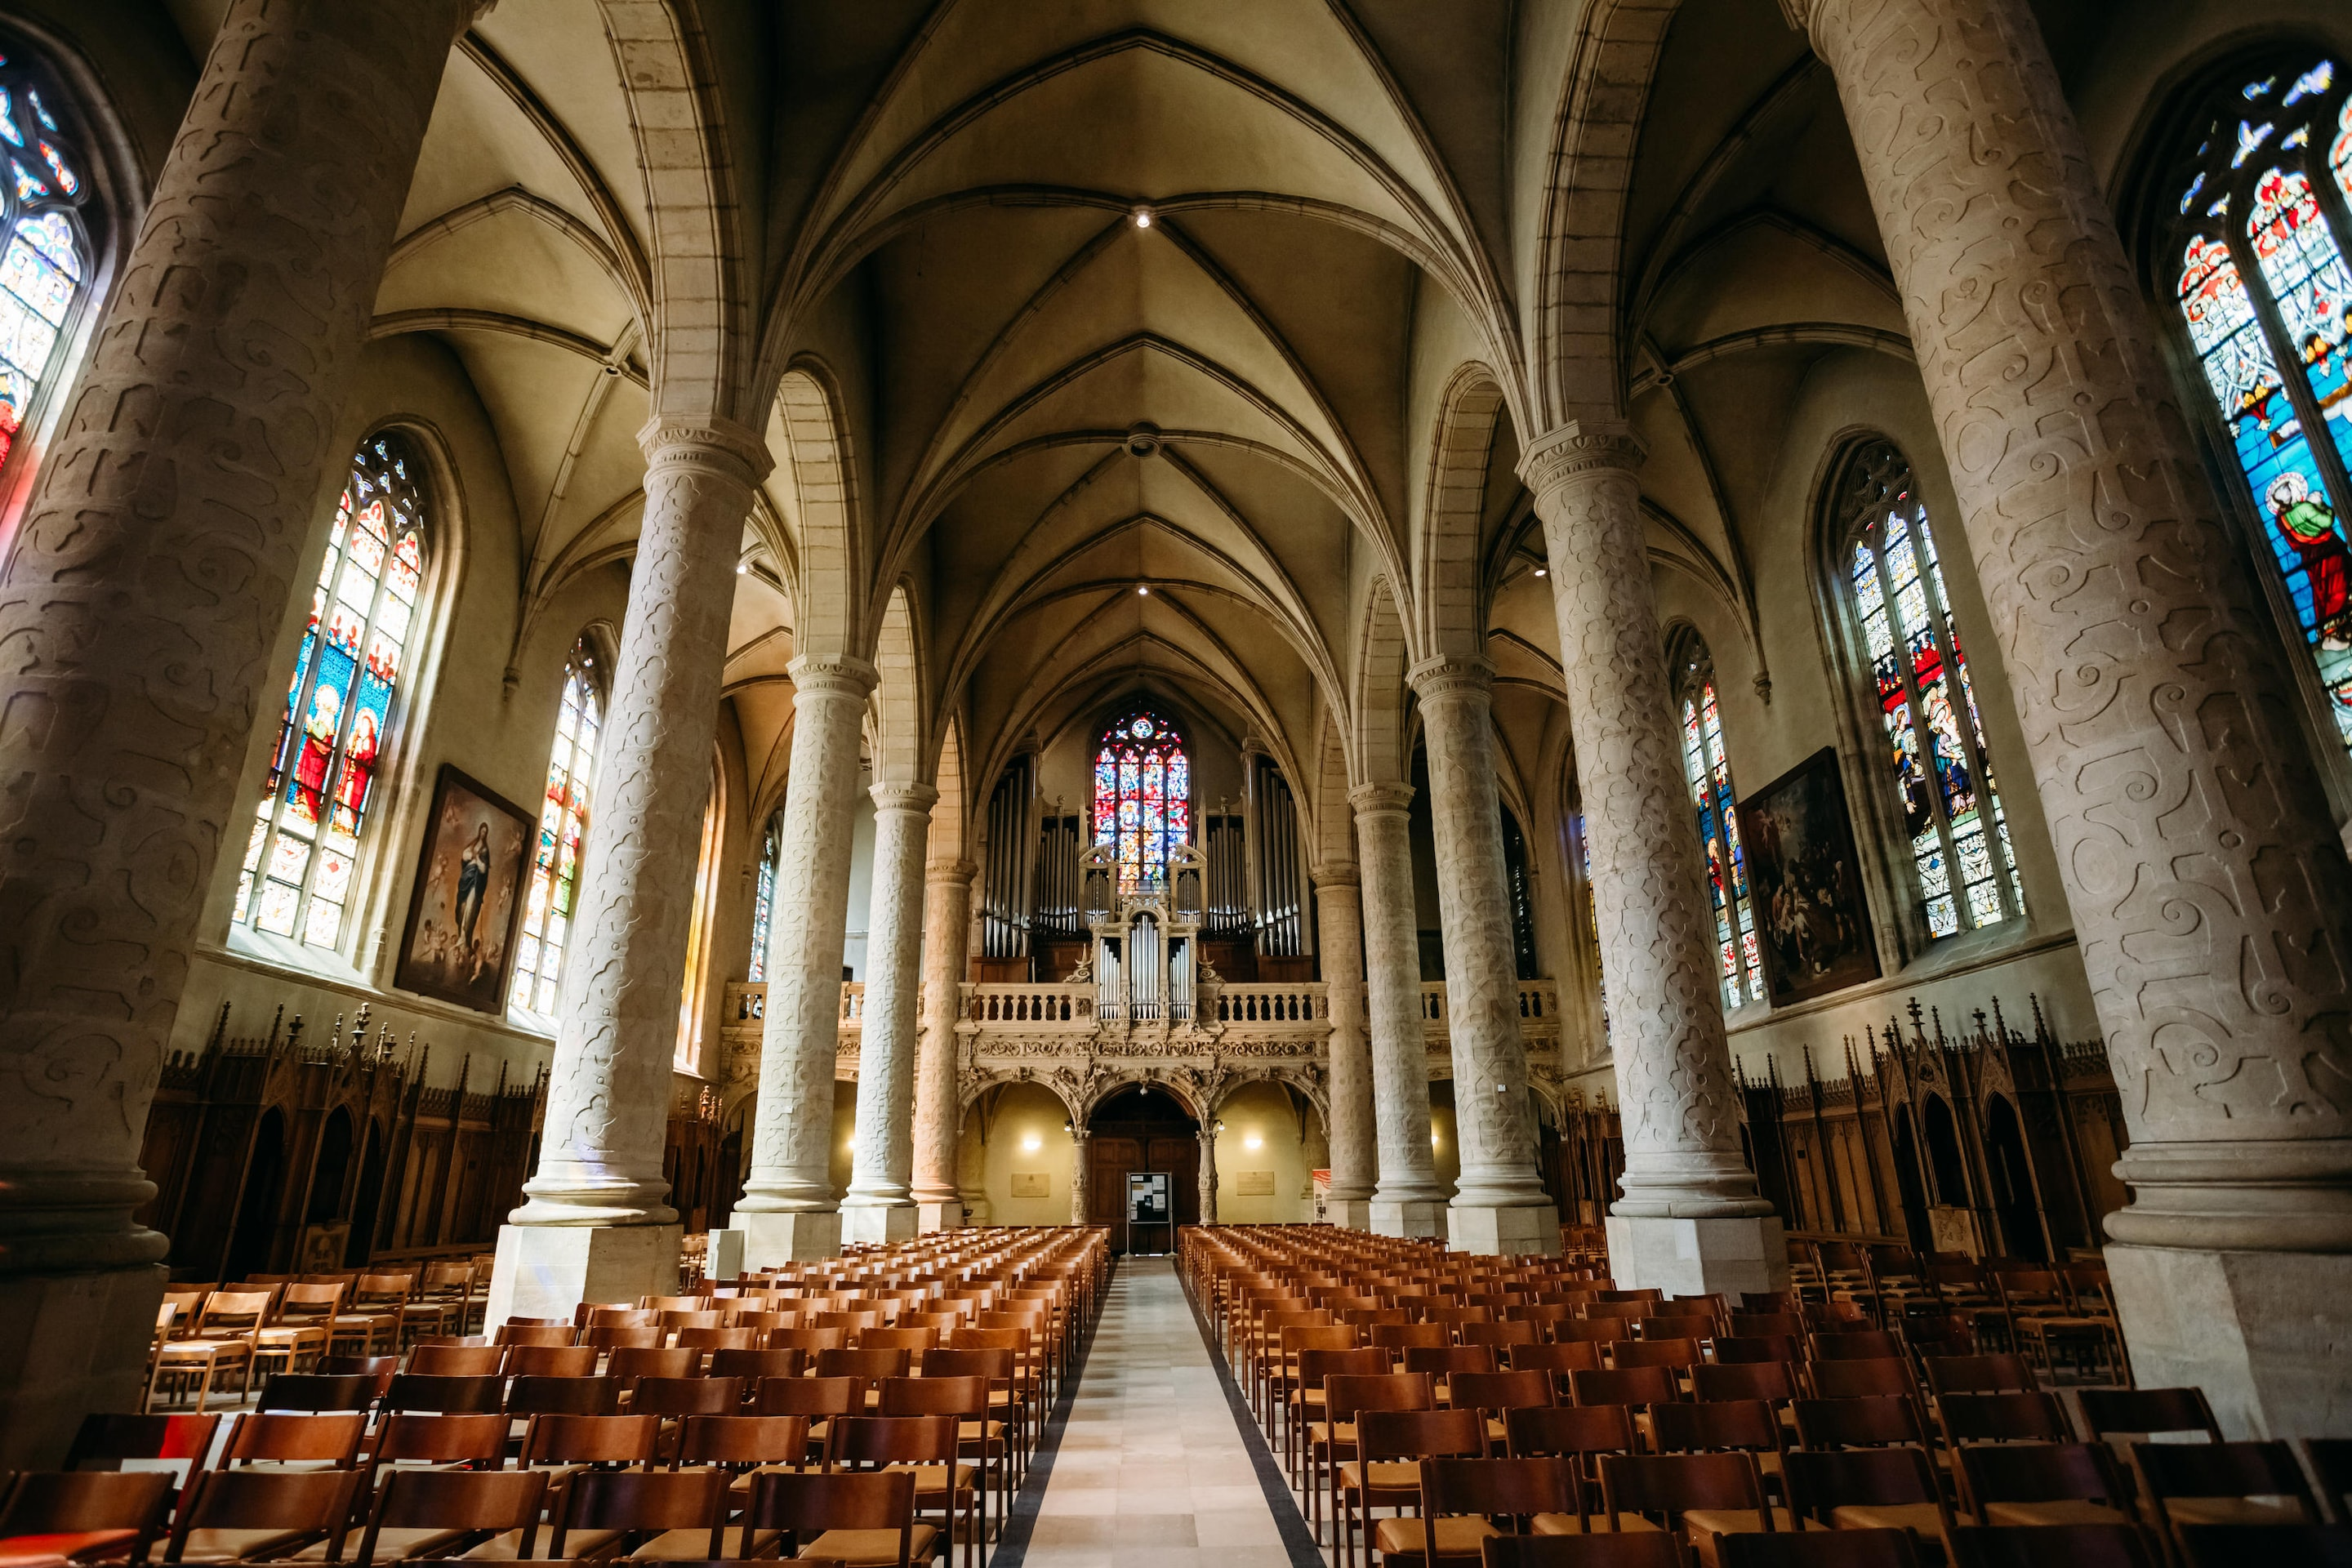 Luxembourg Wedding At Notre Dame Cathedral Incredible Royal Wedding Venues Around The World